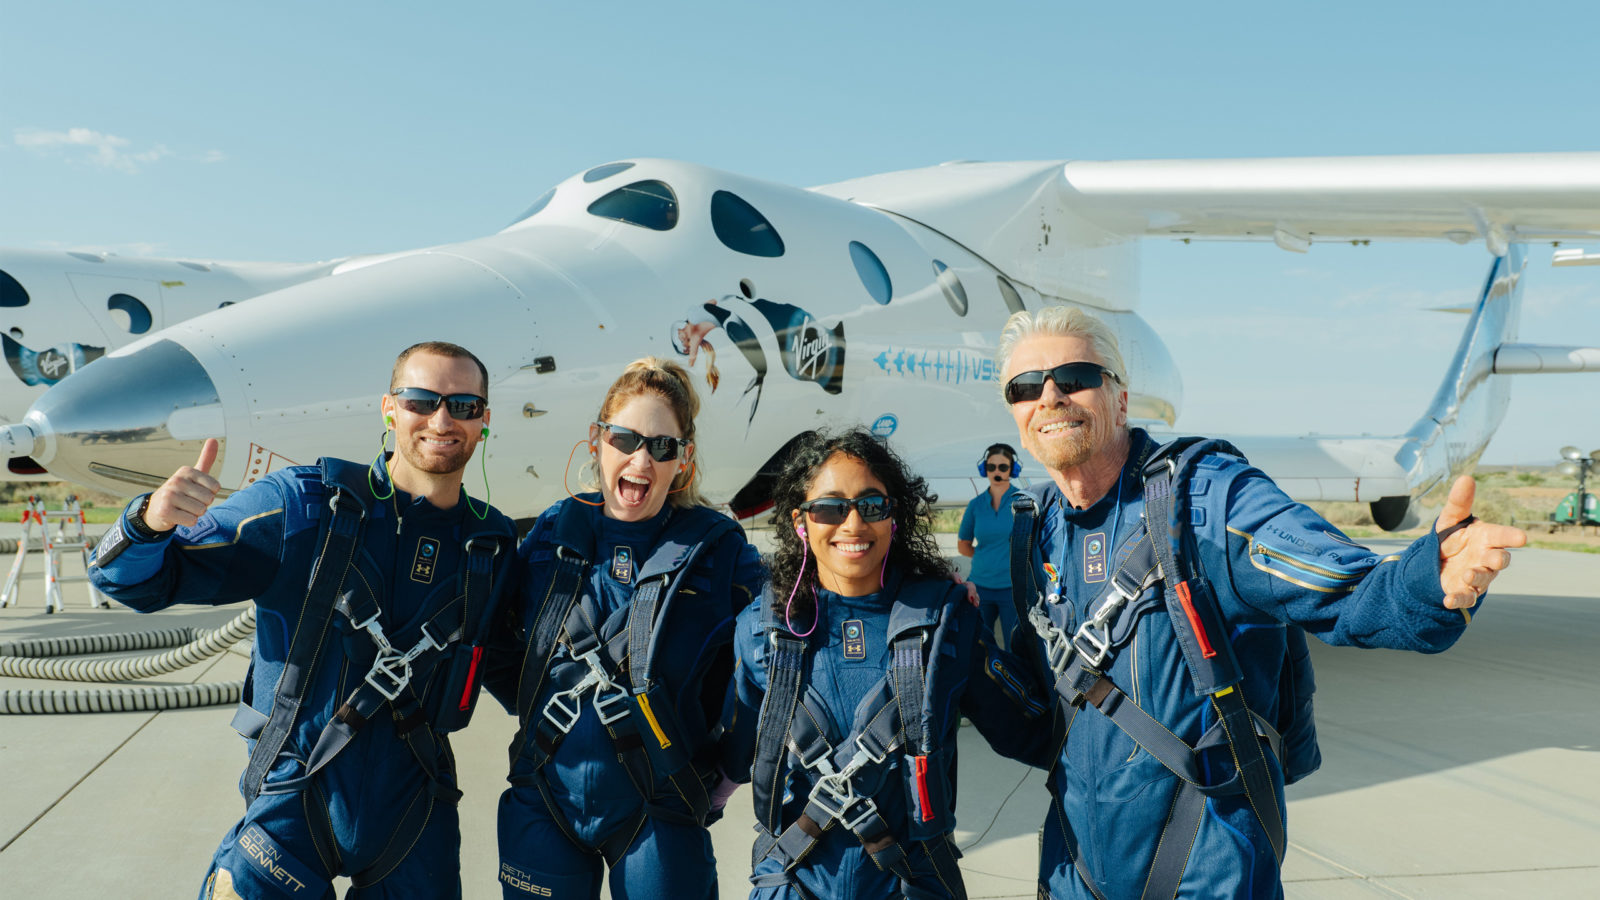 The first four space tourists after their suborbital flight on 11 July 2021 aboard the Space ShipTwo rocket-plane. From left to right: engineer Colin Bennett, instructor Beth Moses, company vice-president Sirisha Bandla, Richard Branson founder of Virgin Galactic Credit: Virgin Galactic